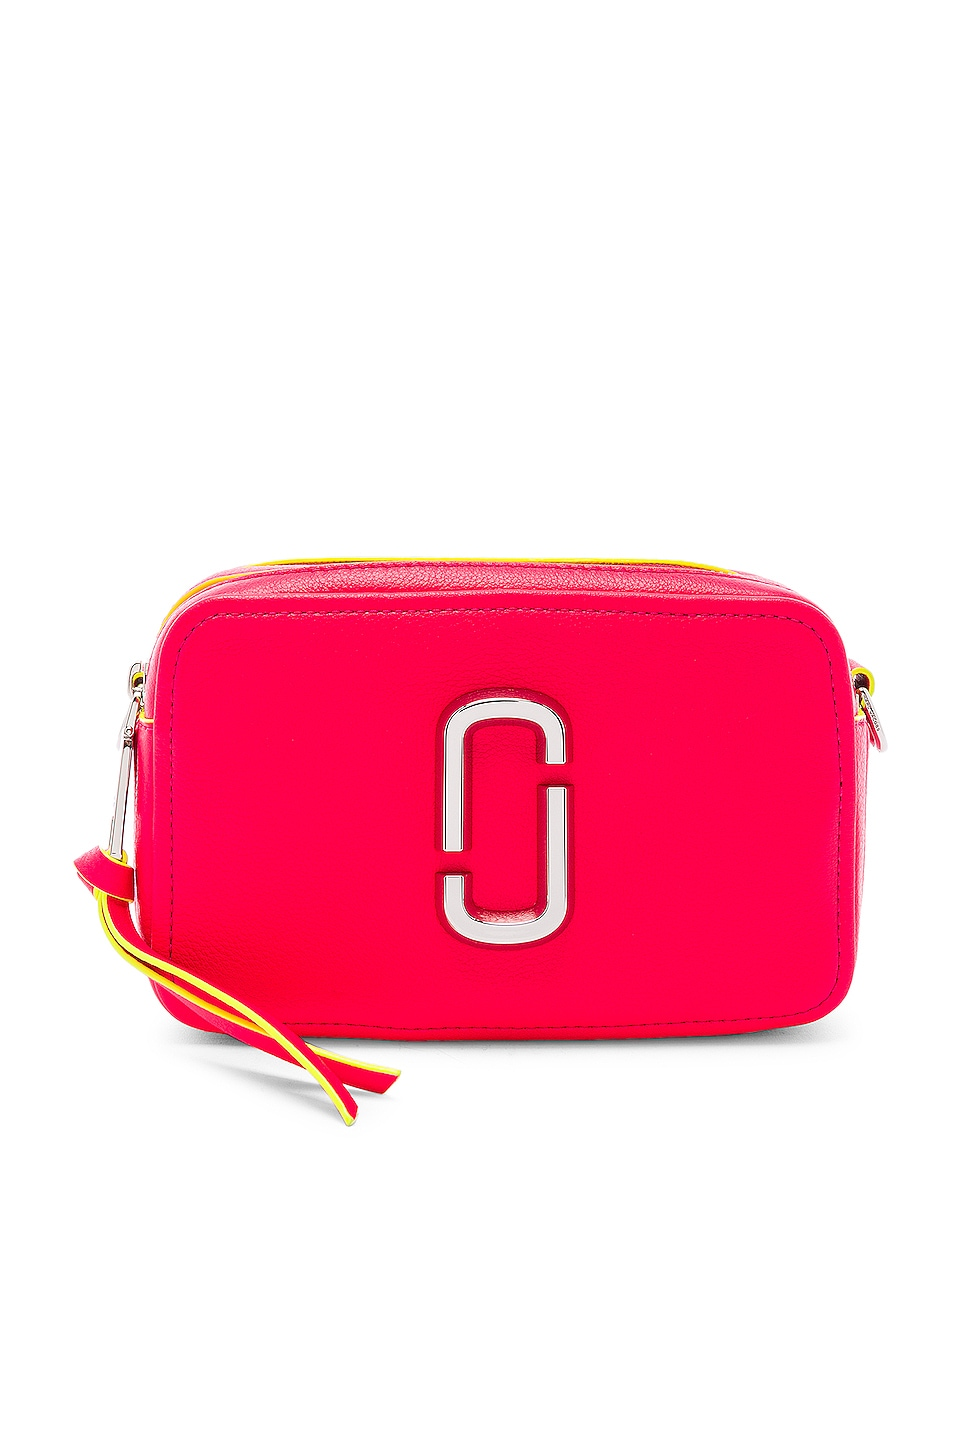 Marc Jacobs The 21 Crossbody in Hot Pink